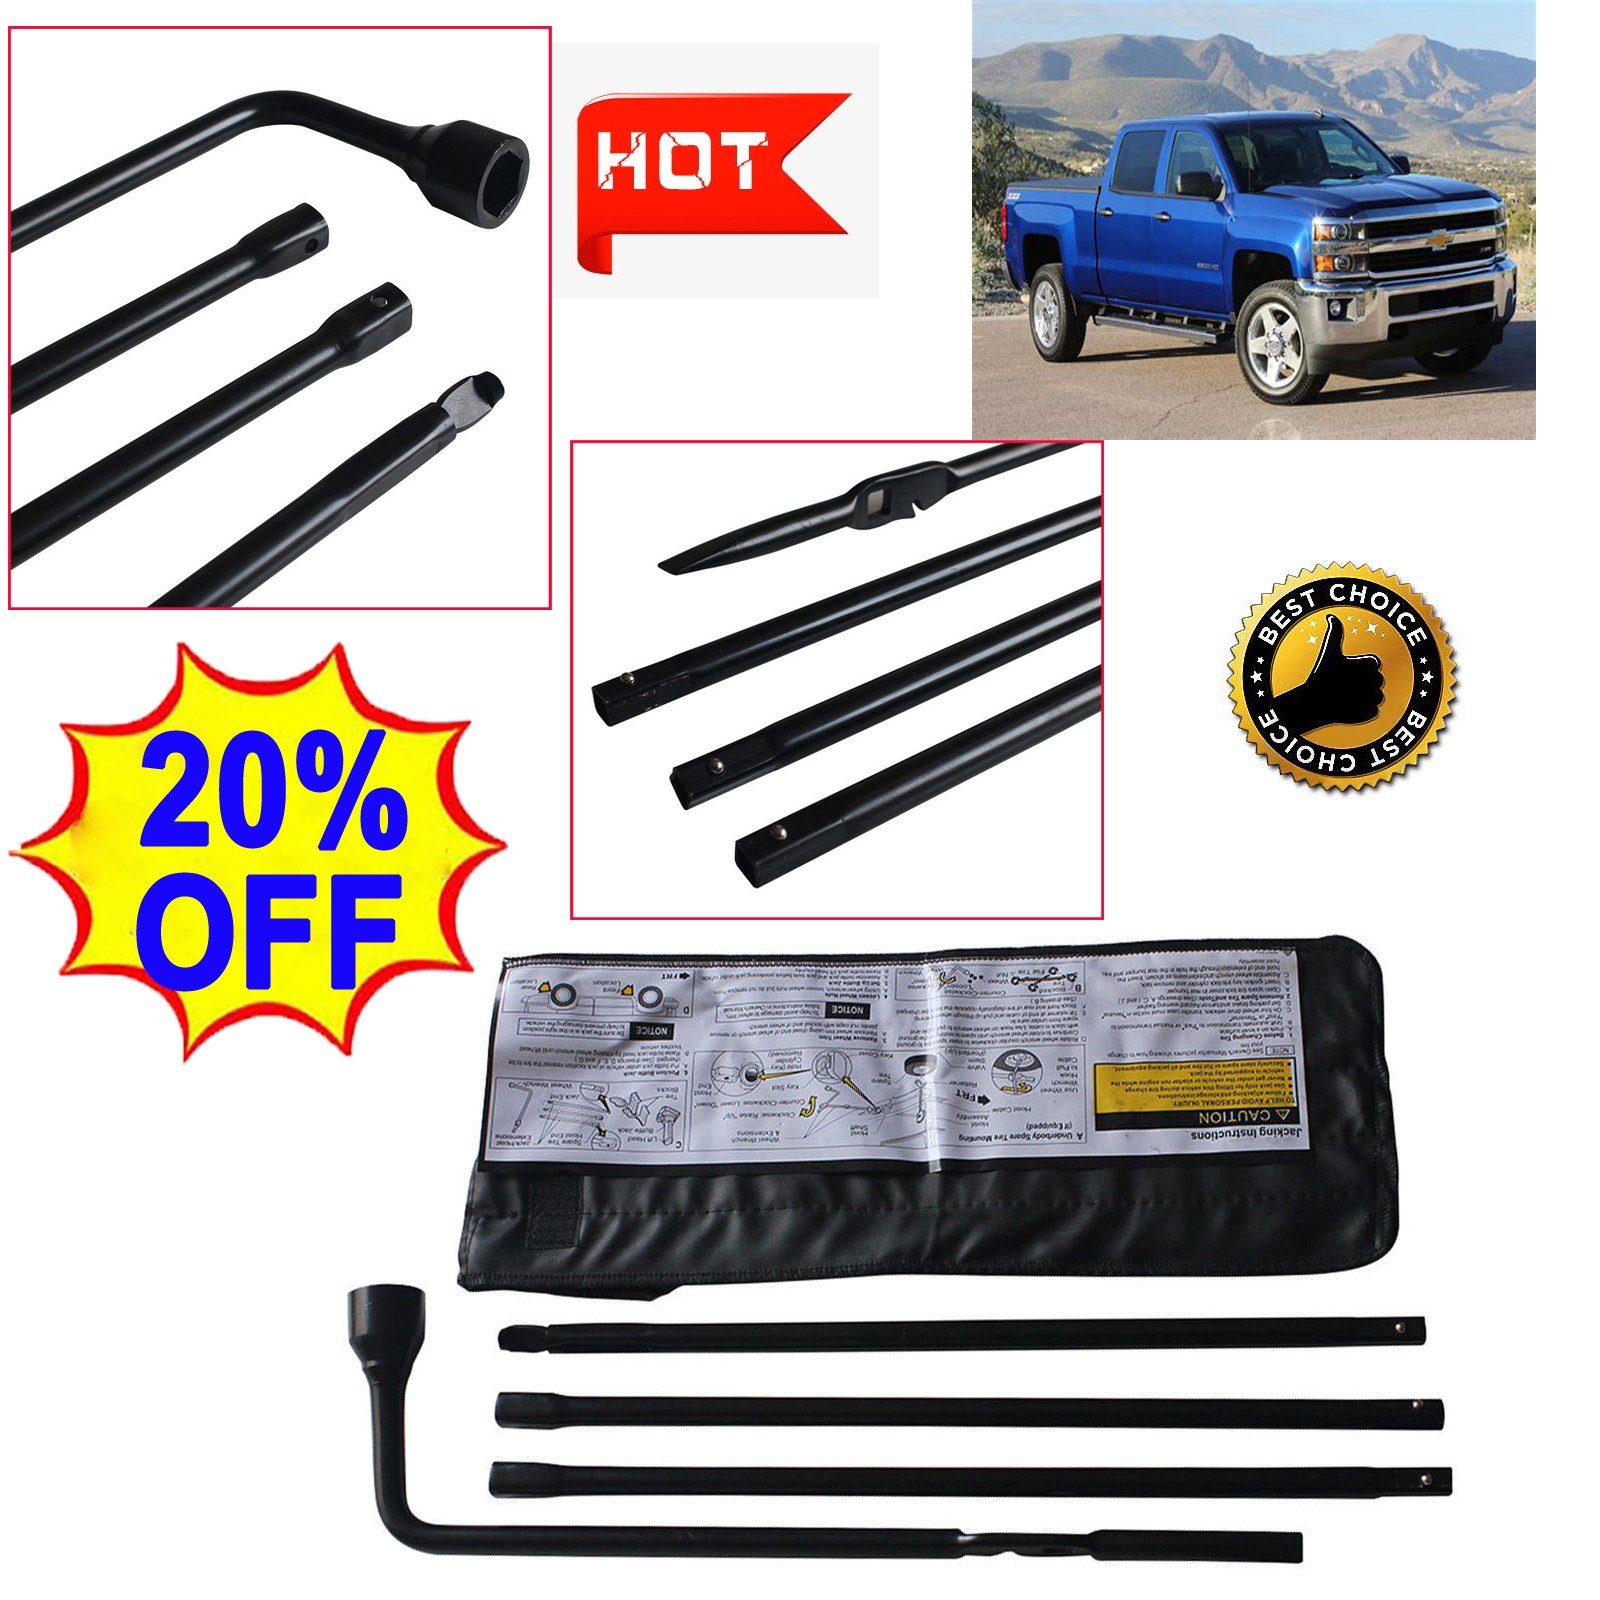 Spare Lug Wrench Tire Tool Set Replacement  For 99-15 Chevy GMC Silverado Sierra